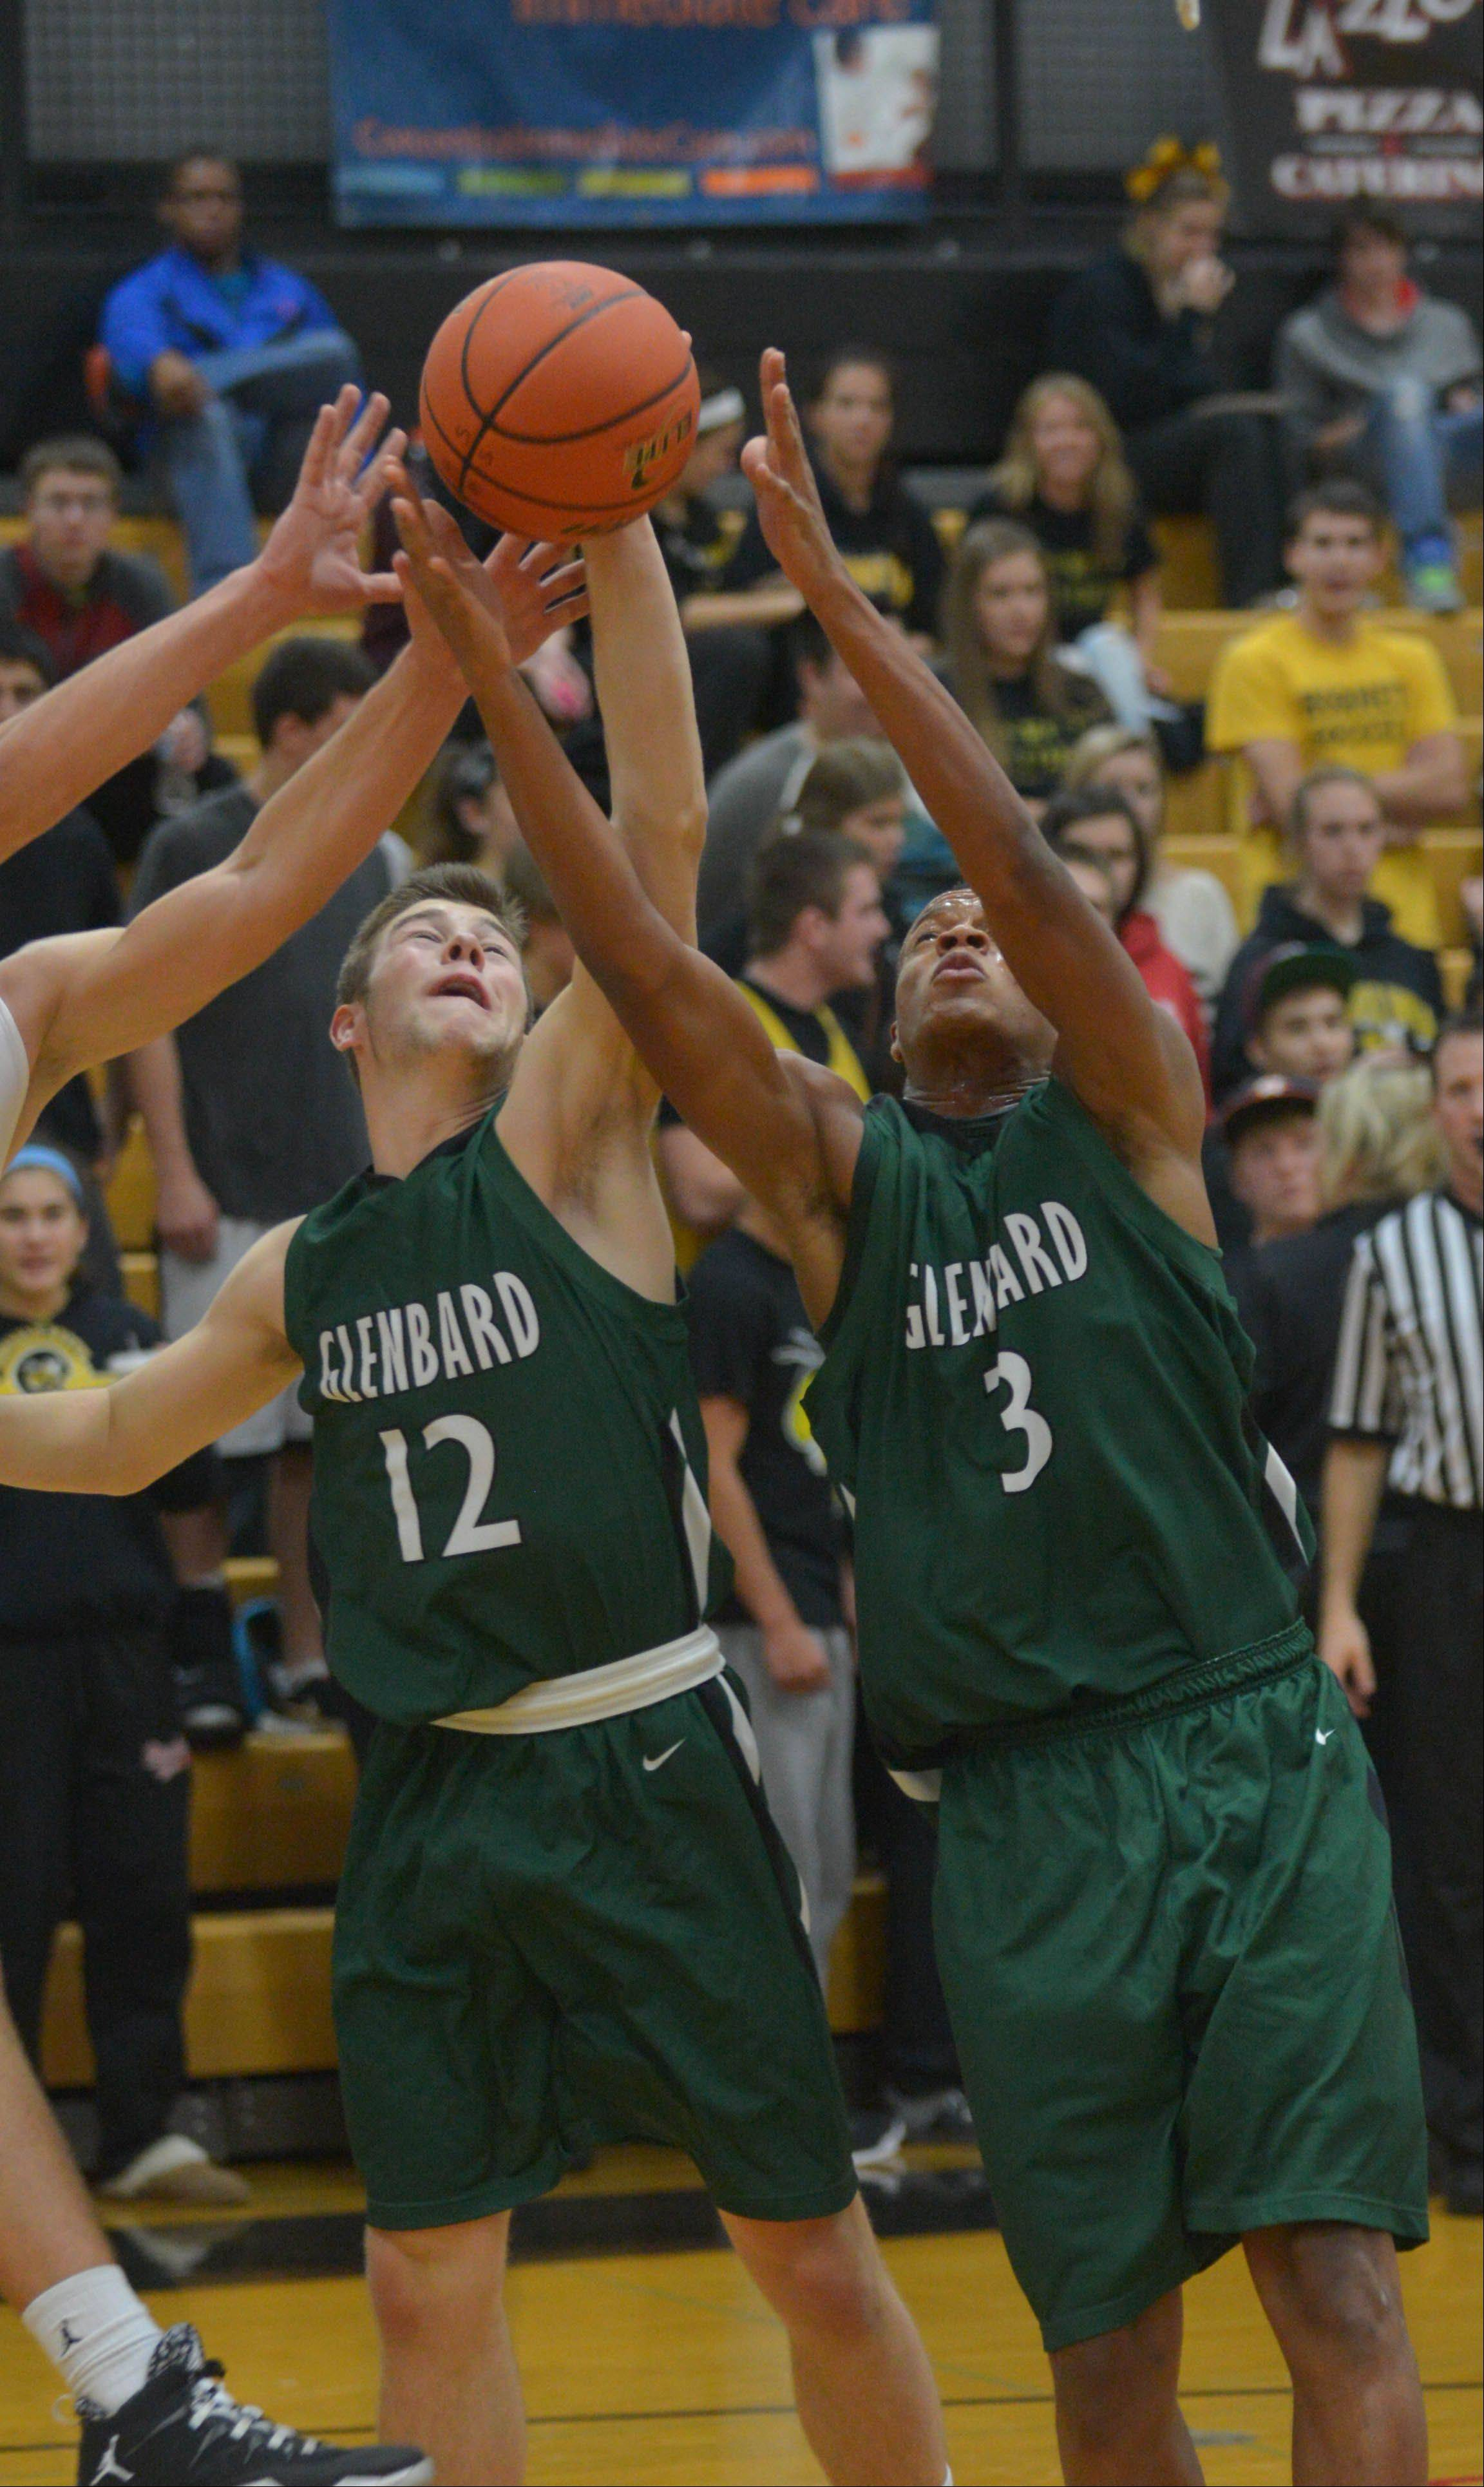 Will Reedy,left, and Kalen Starkey of Glenbard West go for a rebound during the Glenbard West at Hinsdale South boys basketball game Wednesday.